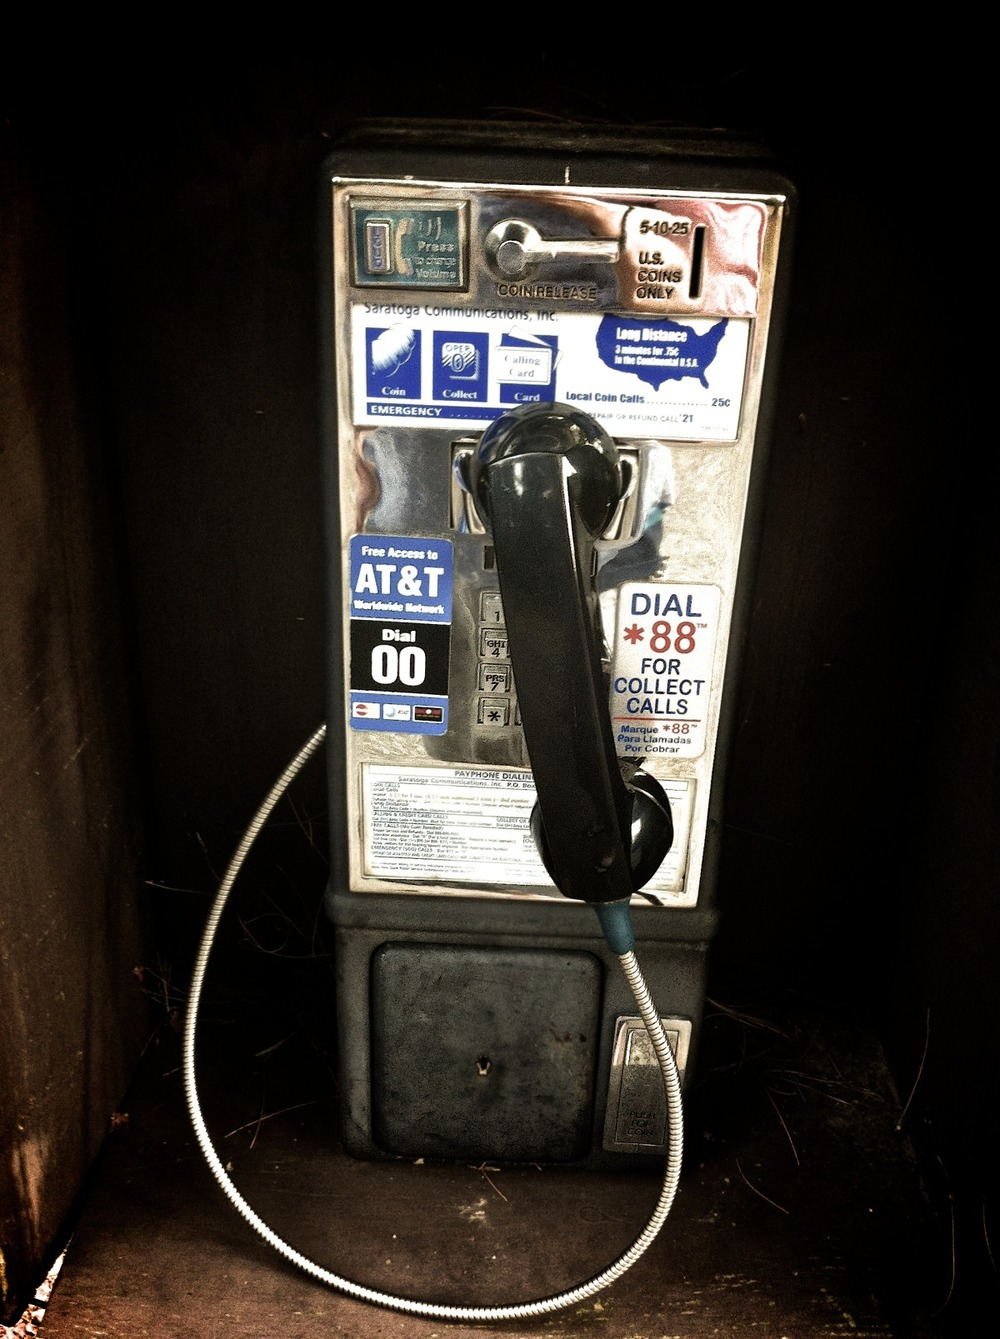 payphone 9.17 upload 1.jpg